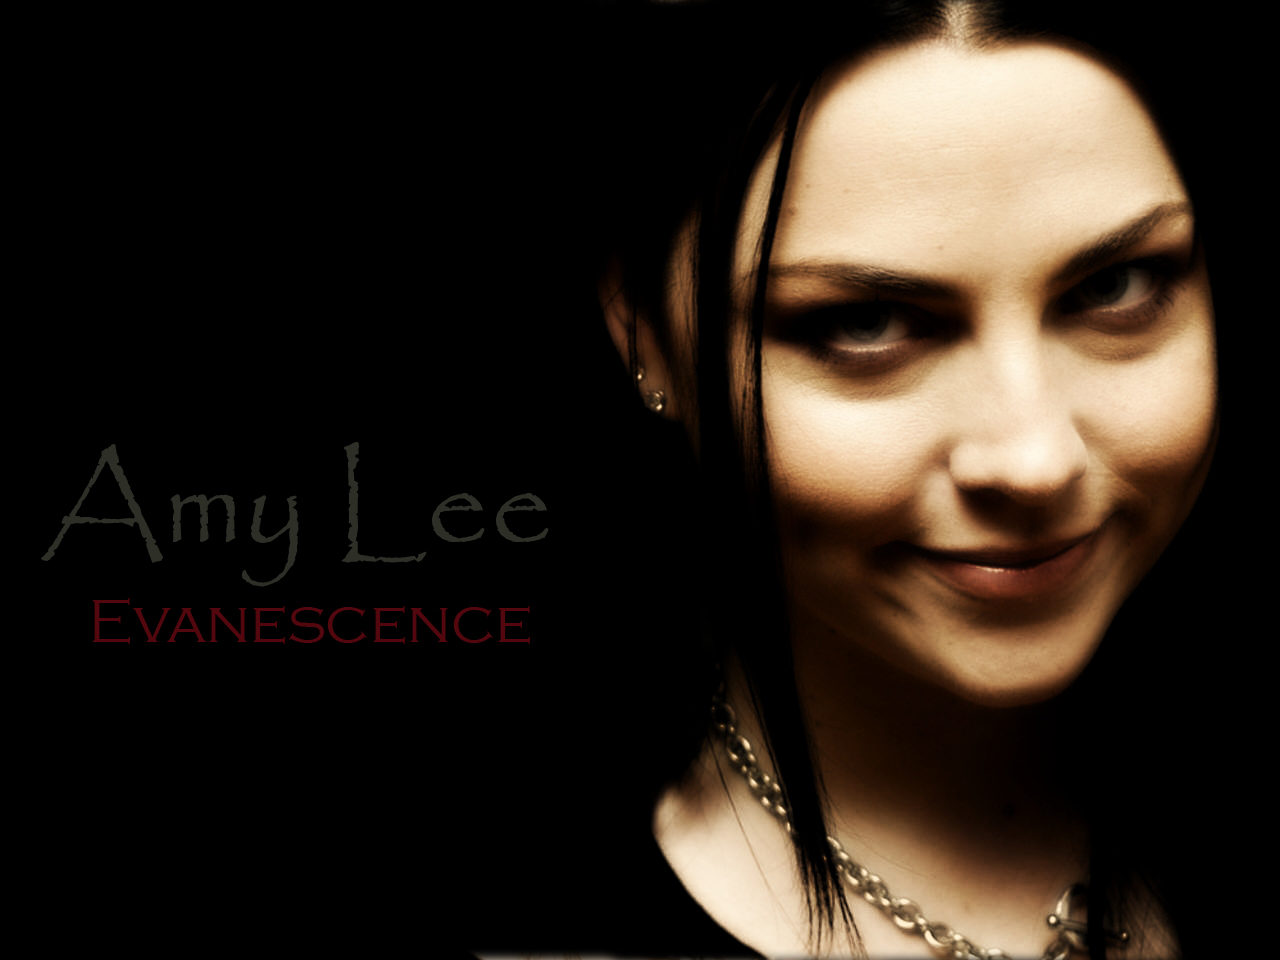 My Immortal Lyrics Evanescence